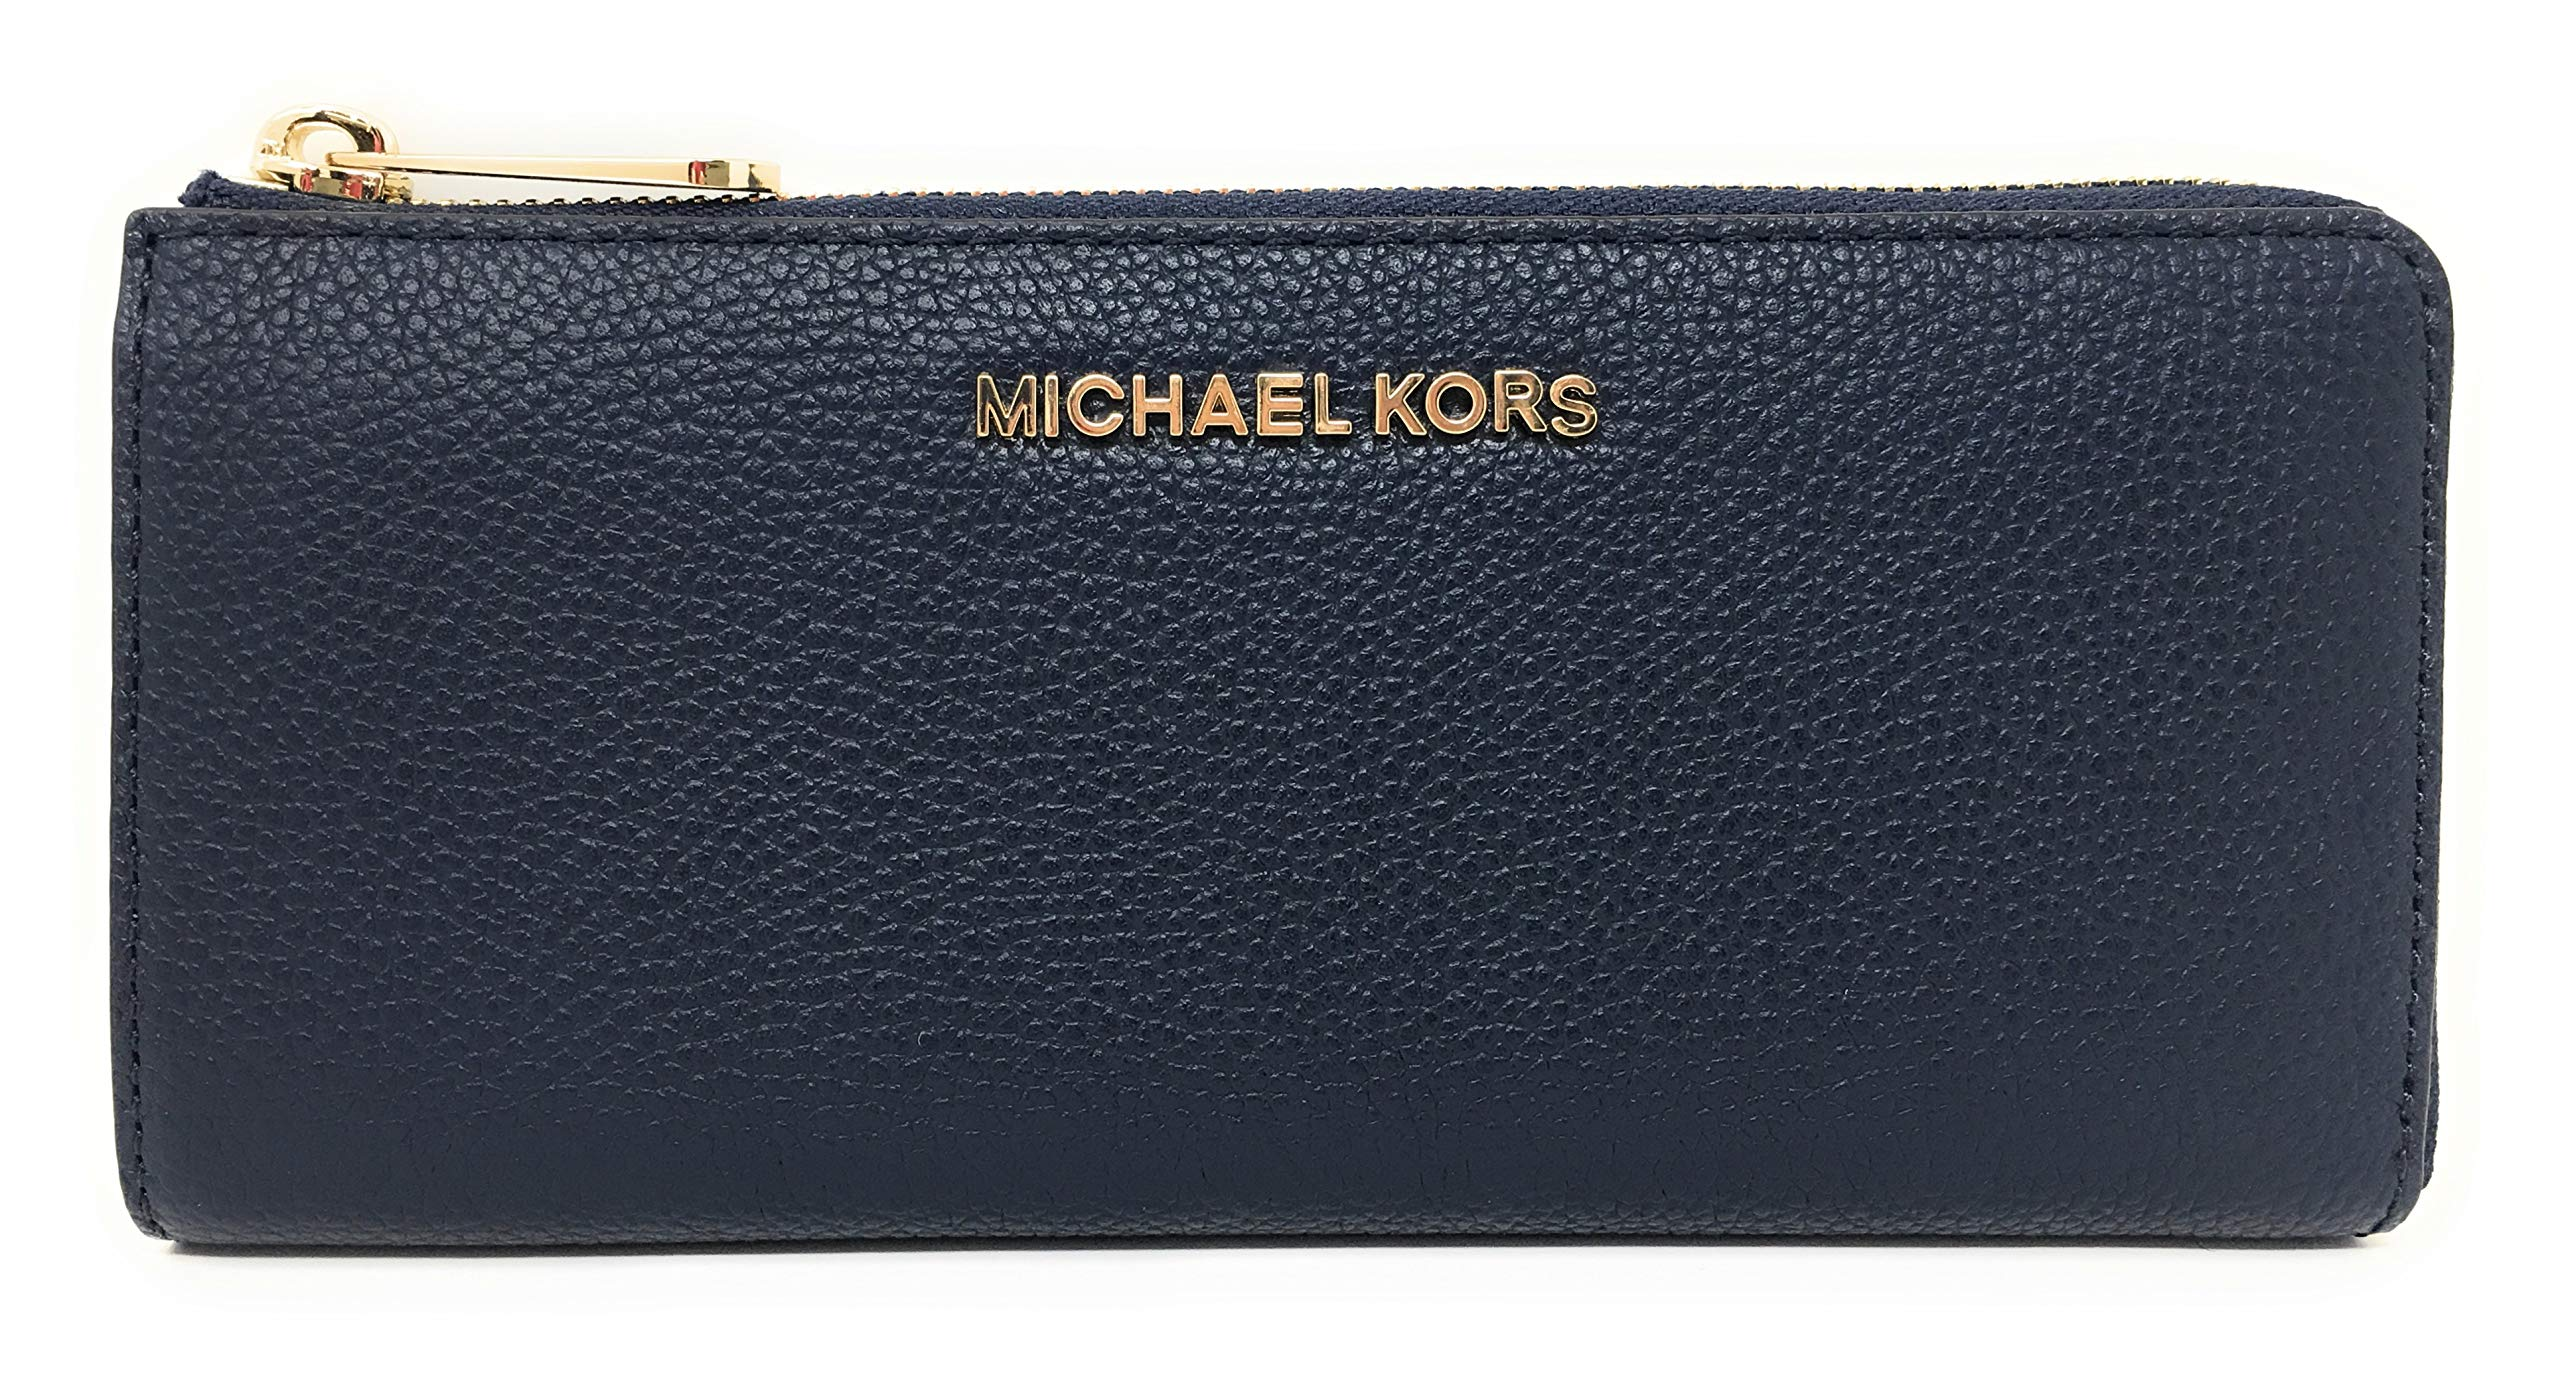 Michael Kors Jet Set Large Three Quarter Zip Around Pebbled Leather Wallet (Navy with Gold Hardware)